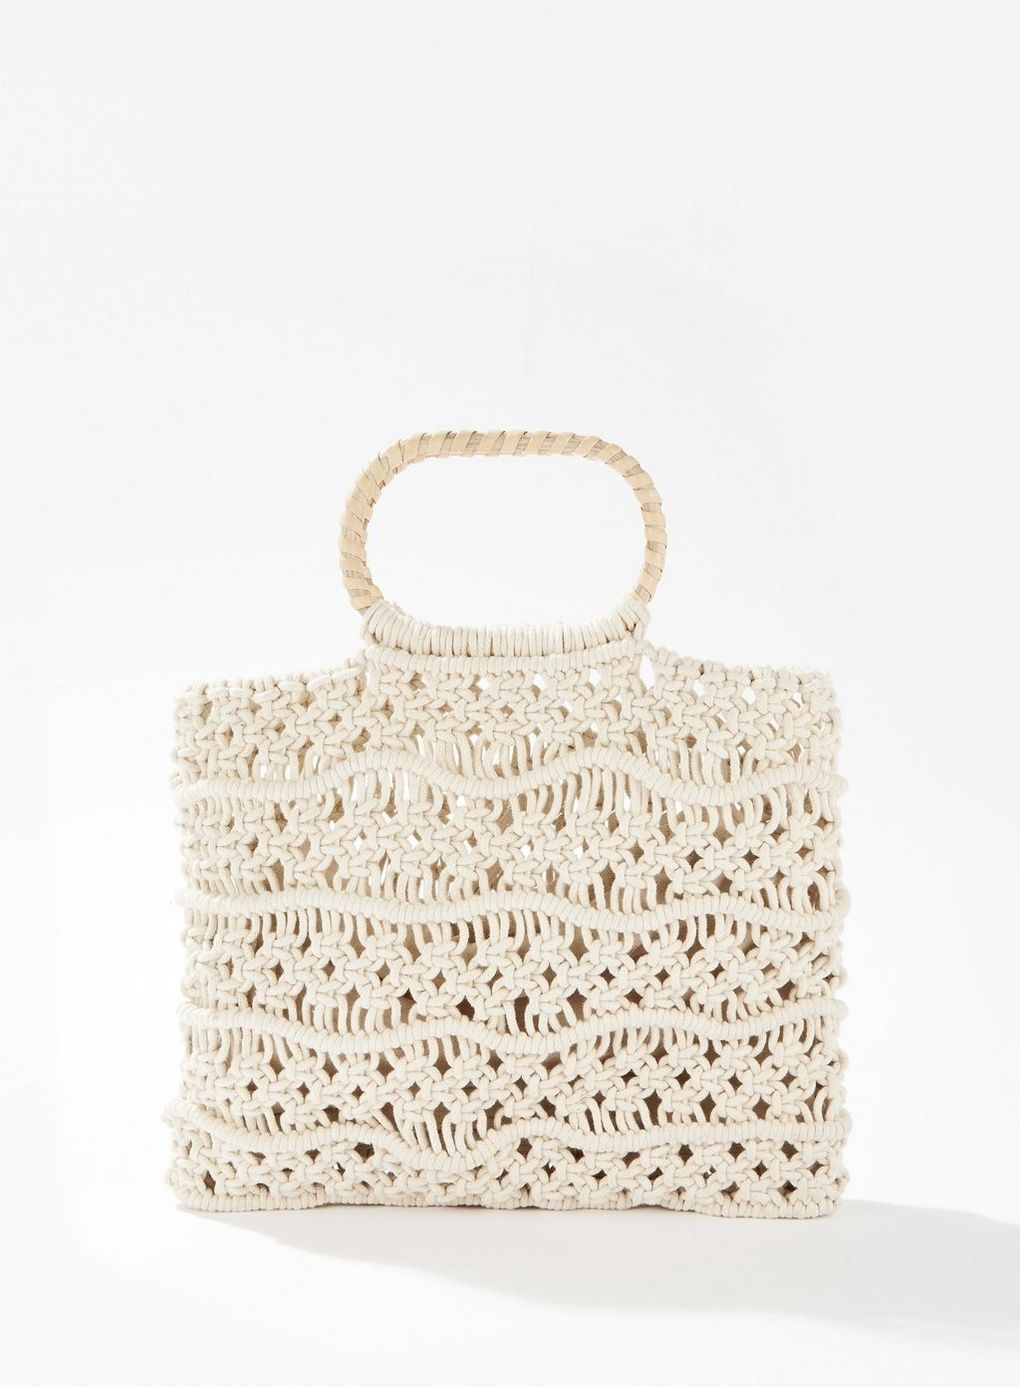 Wooden Handle Macrame Tote Bag #woodentotebag